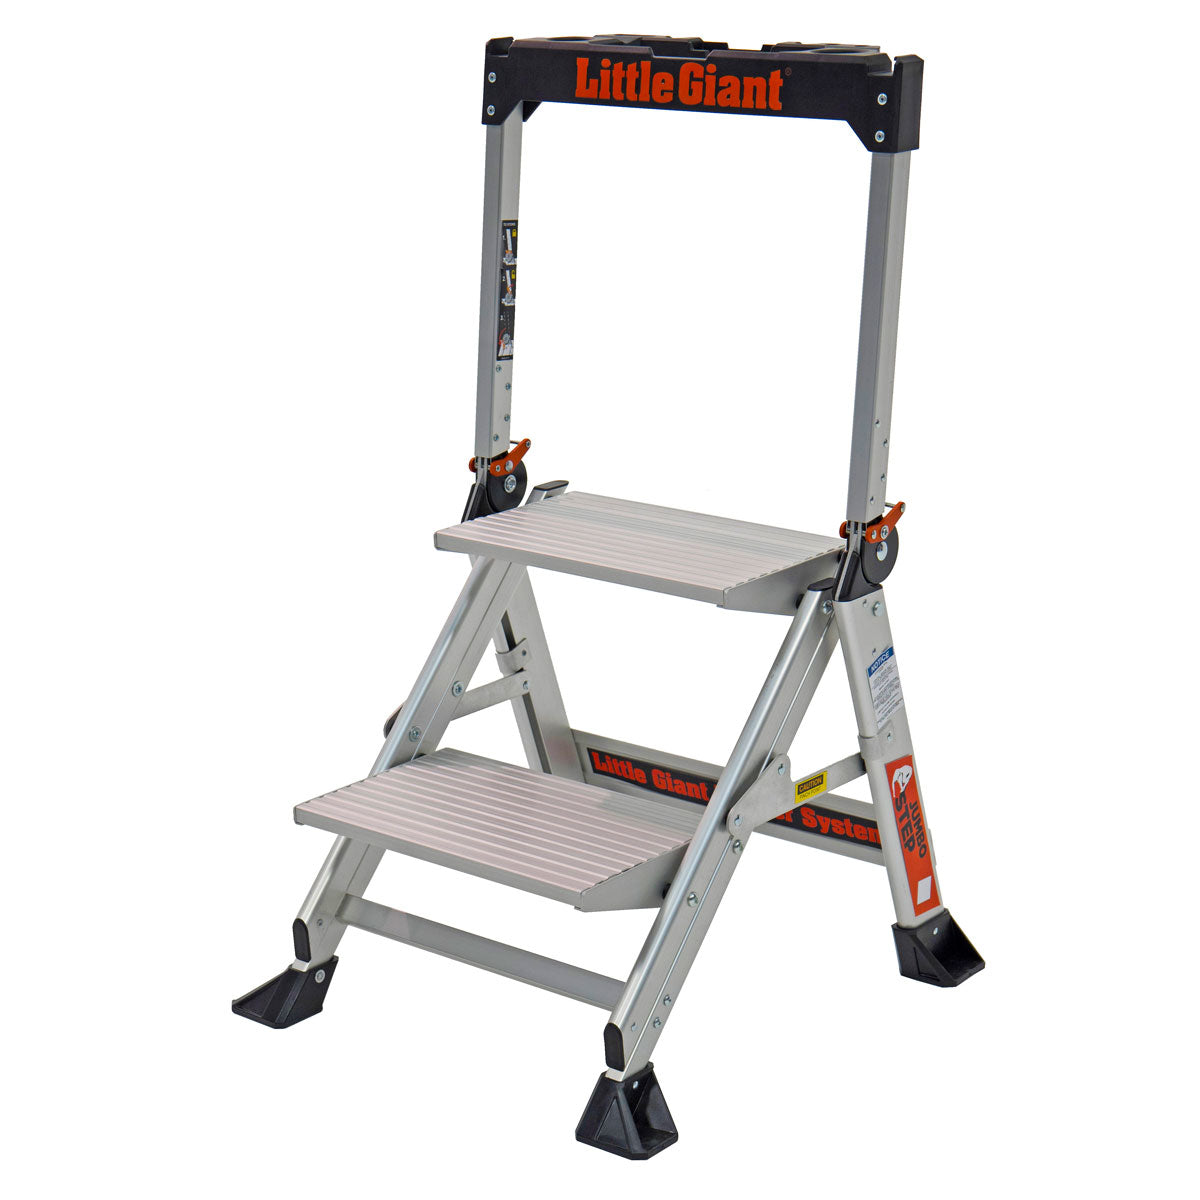 Little Giant Jumbo Step Type 1aa Jumbo Step Stools